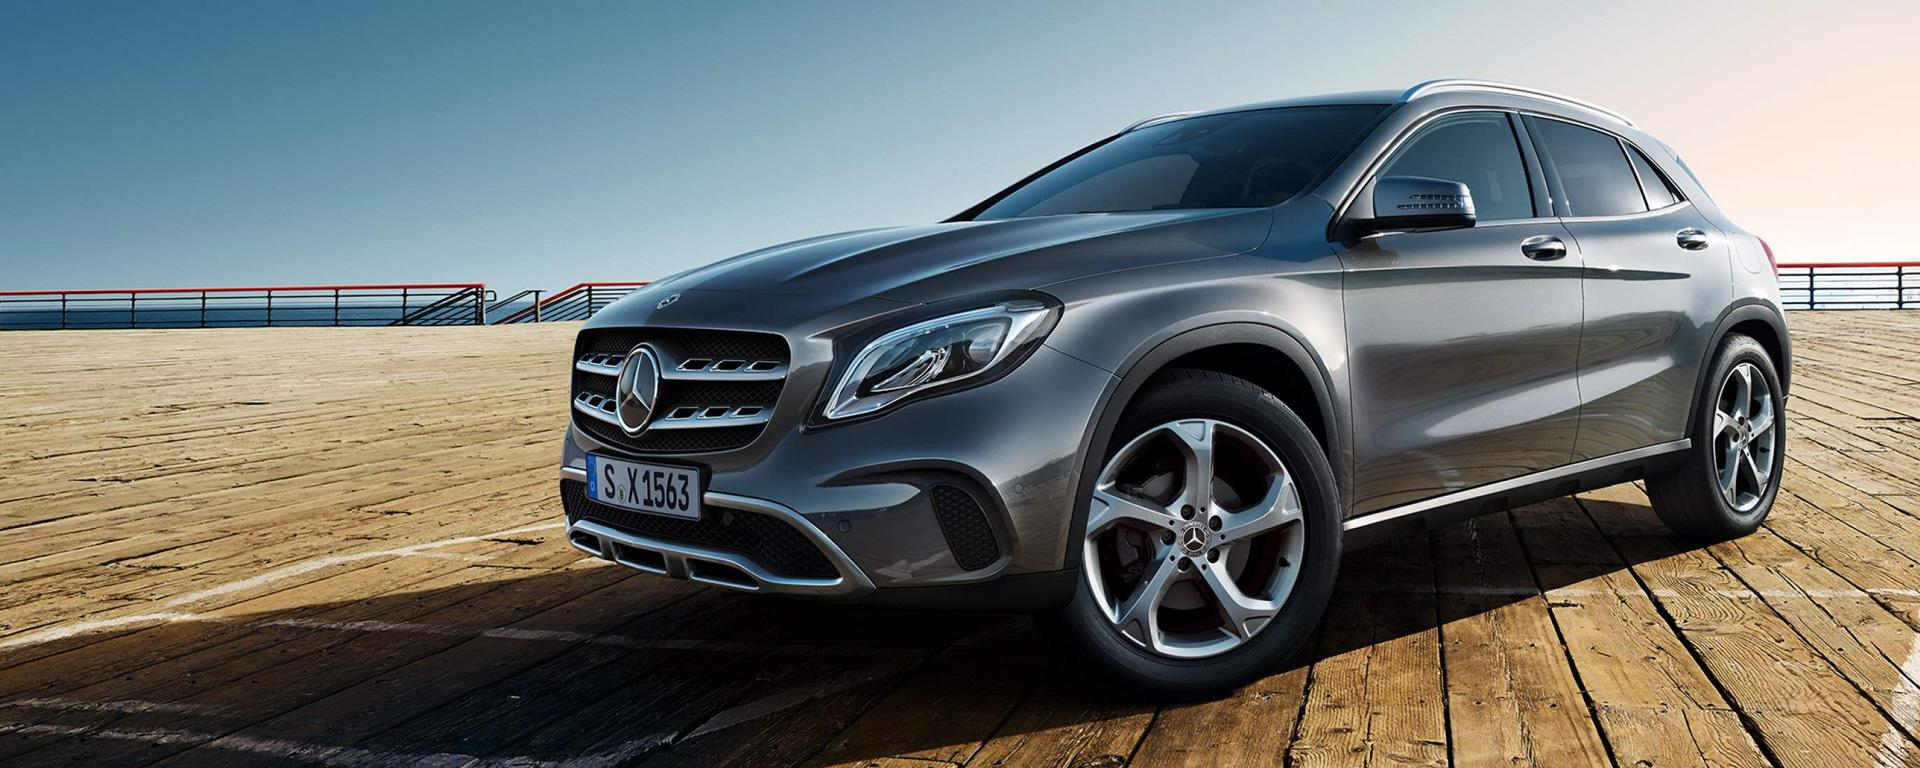 Mercedes-Benz GLA leasen